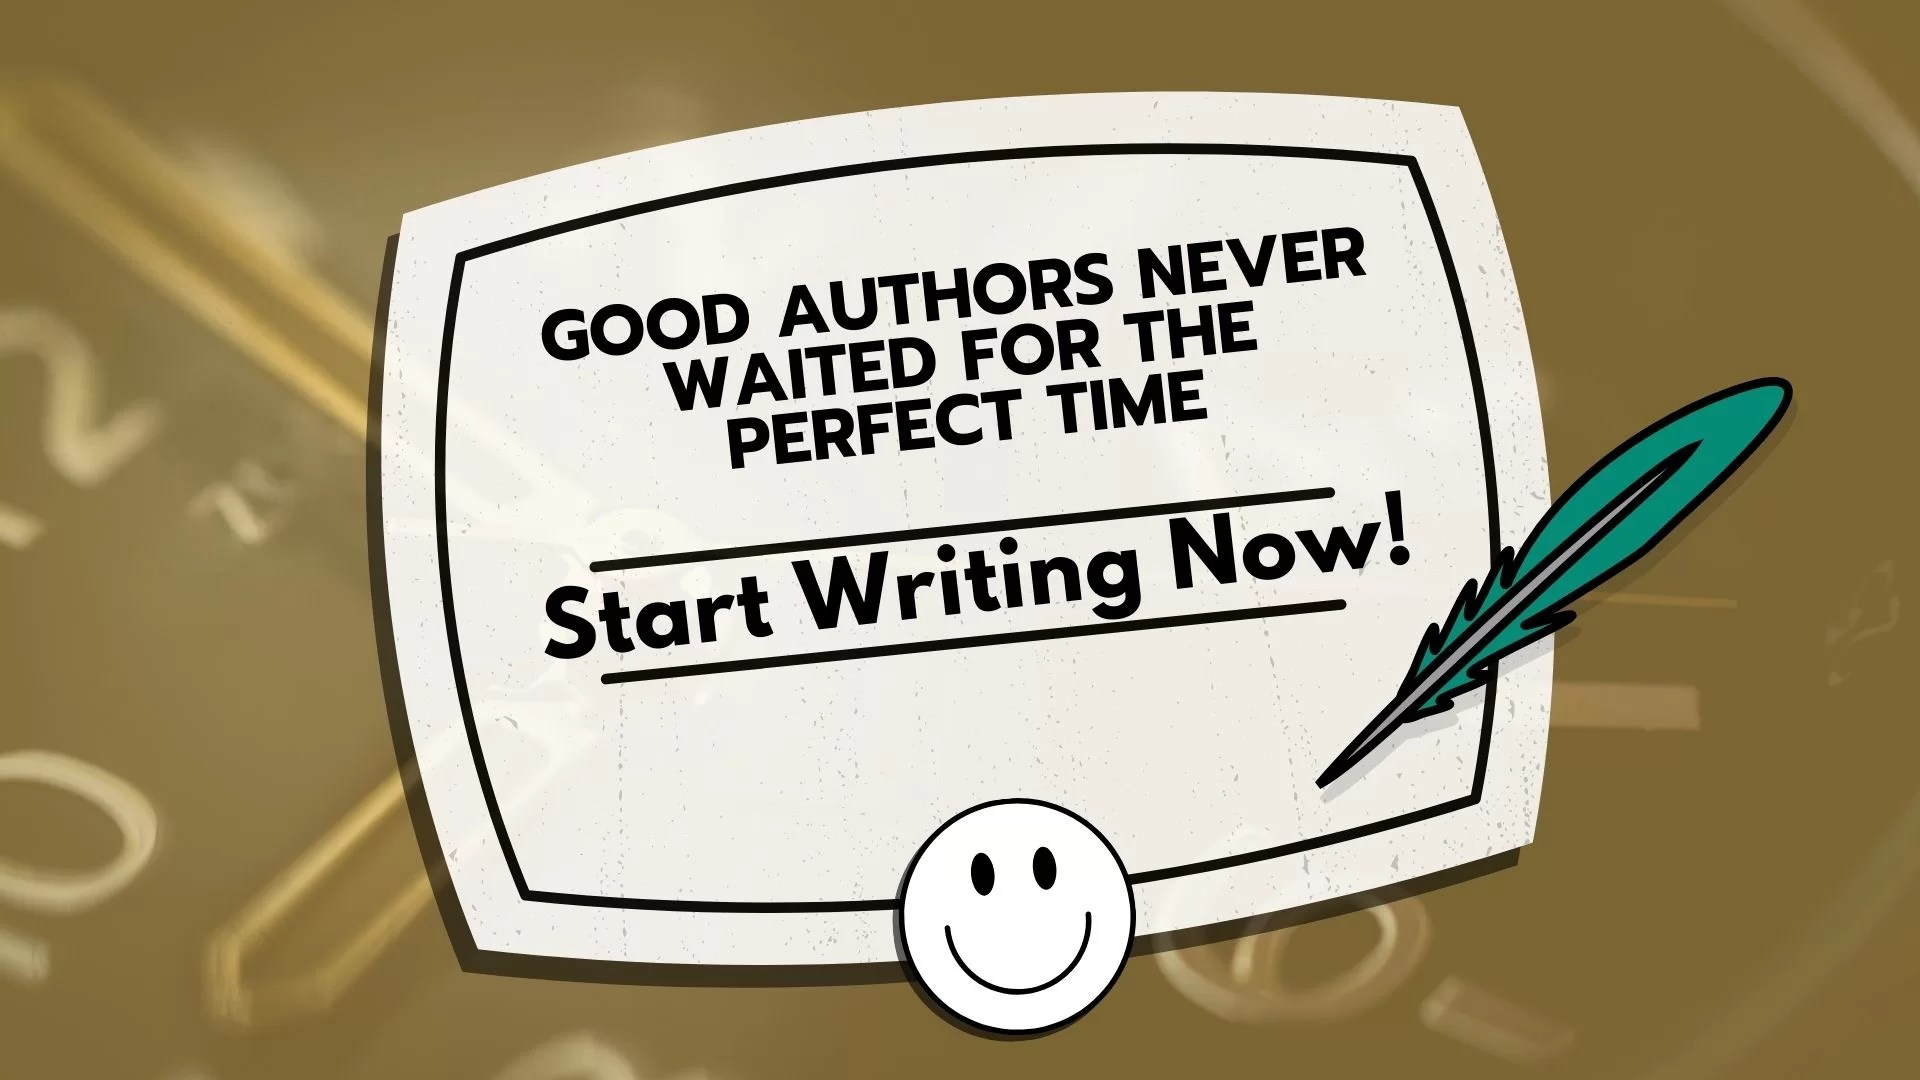 Good Authors Never Waited For The Perfect Time: Start Writing Now!